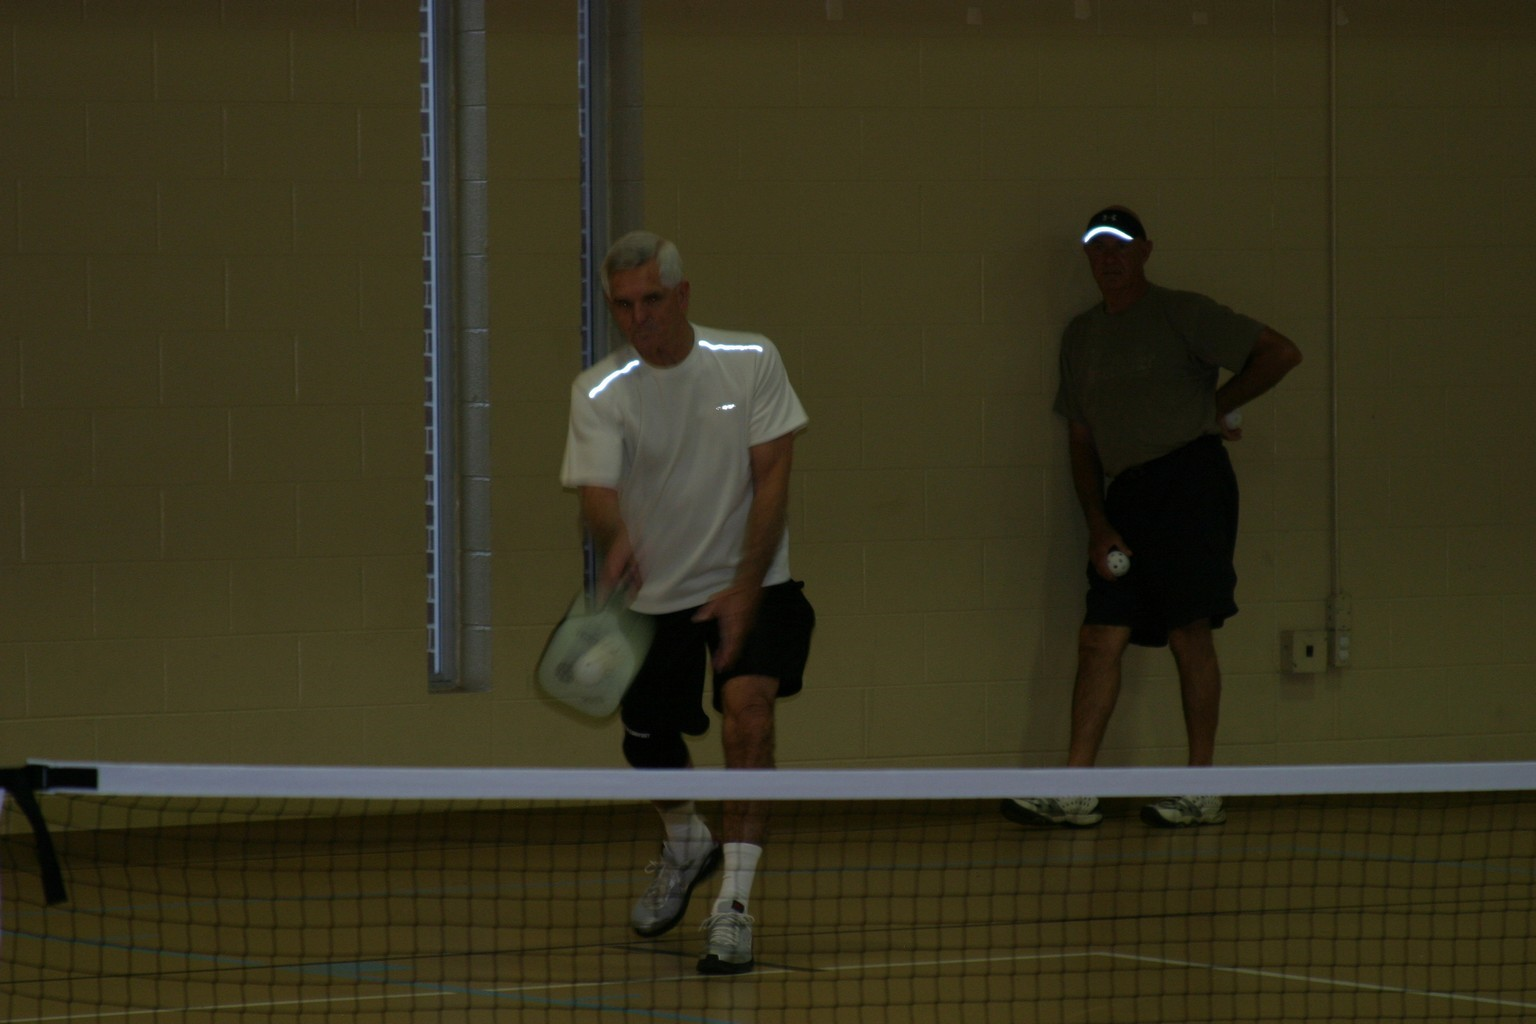 alabama pickleball, trussville pickleball, southside pickleball, pickleball, family pickleball, southside baptist church pickleball, southside baptist church